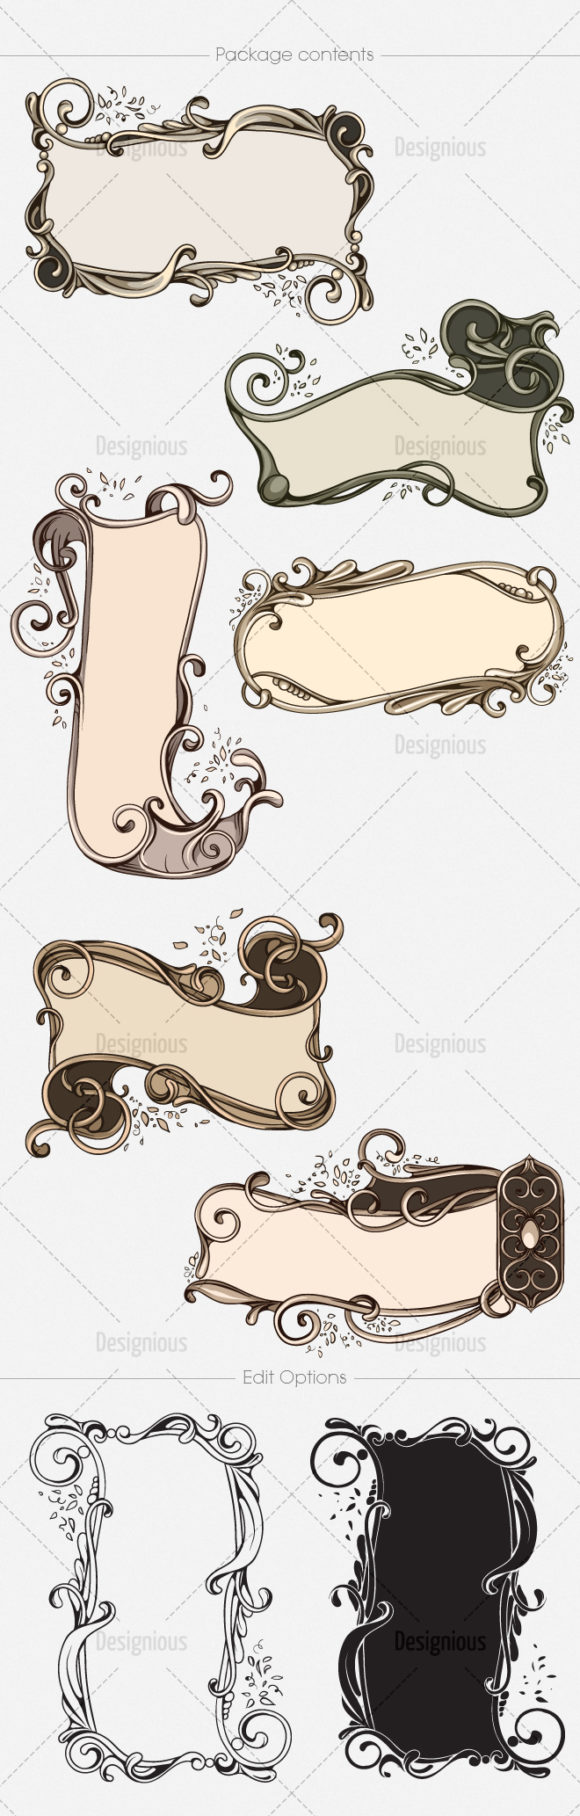 Floral Vector Pack 146 6